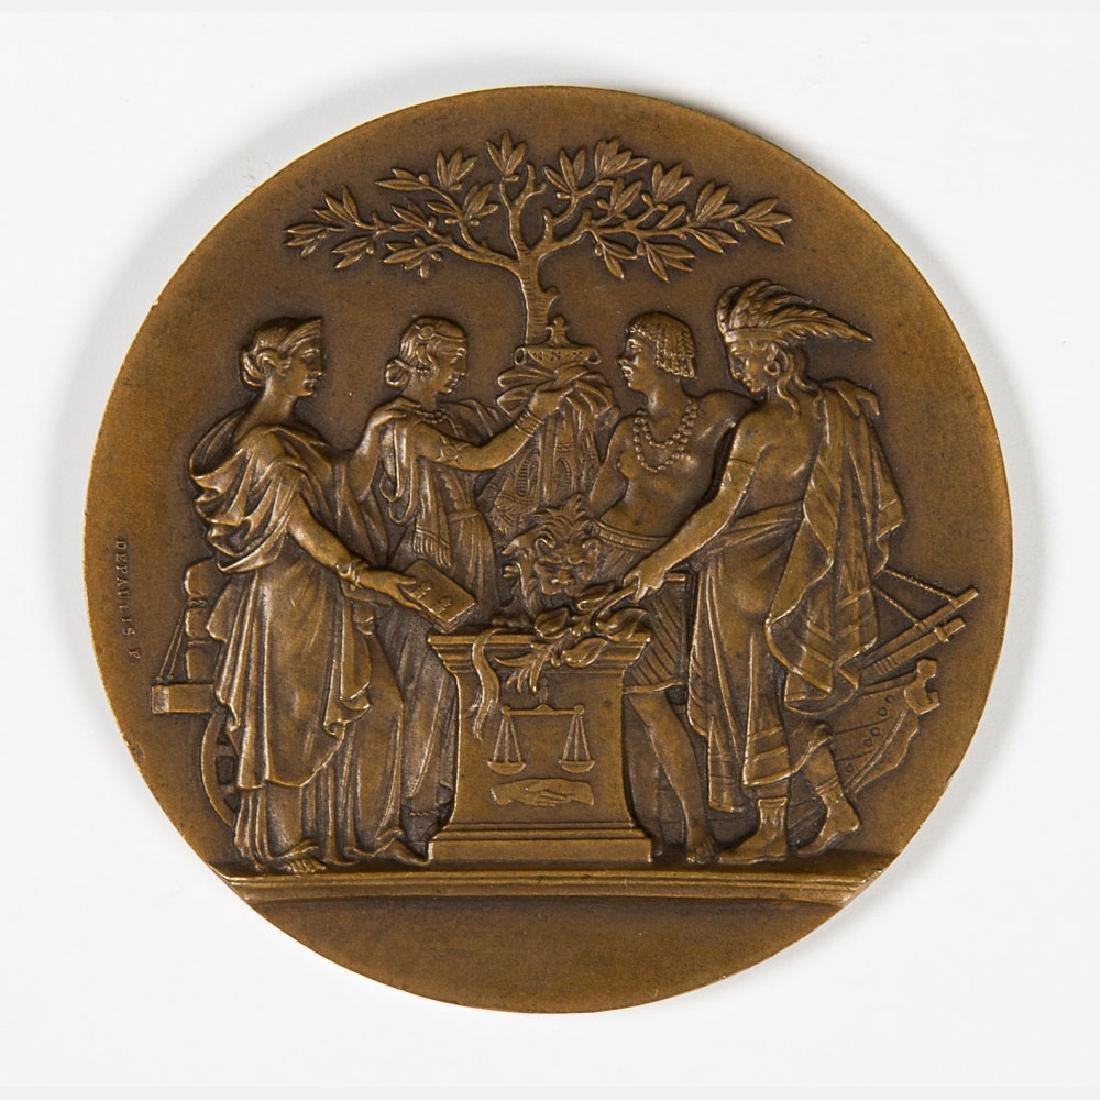 A Bronze Medal by De Paulis from the Louisiana Purchase